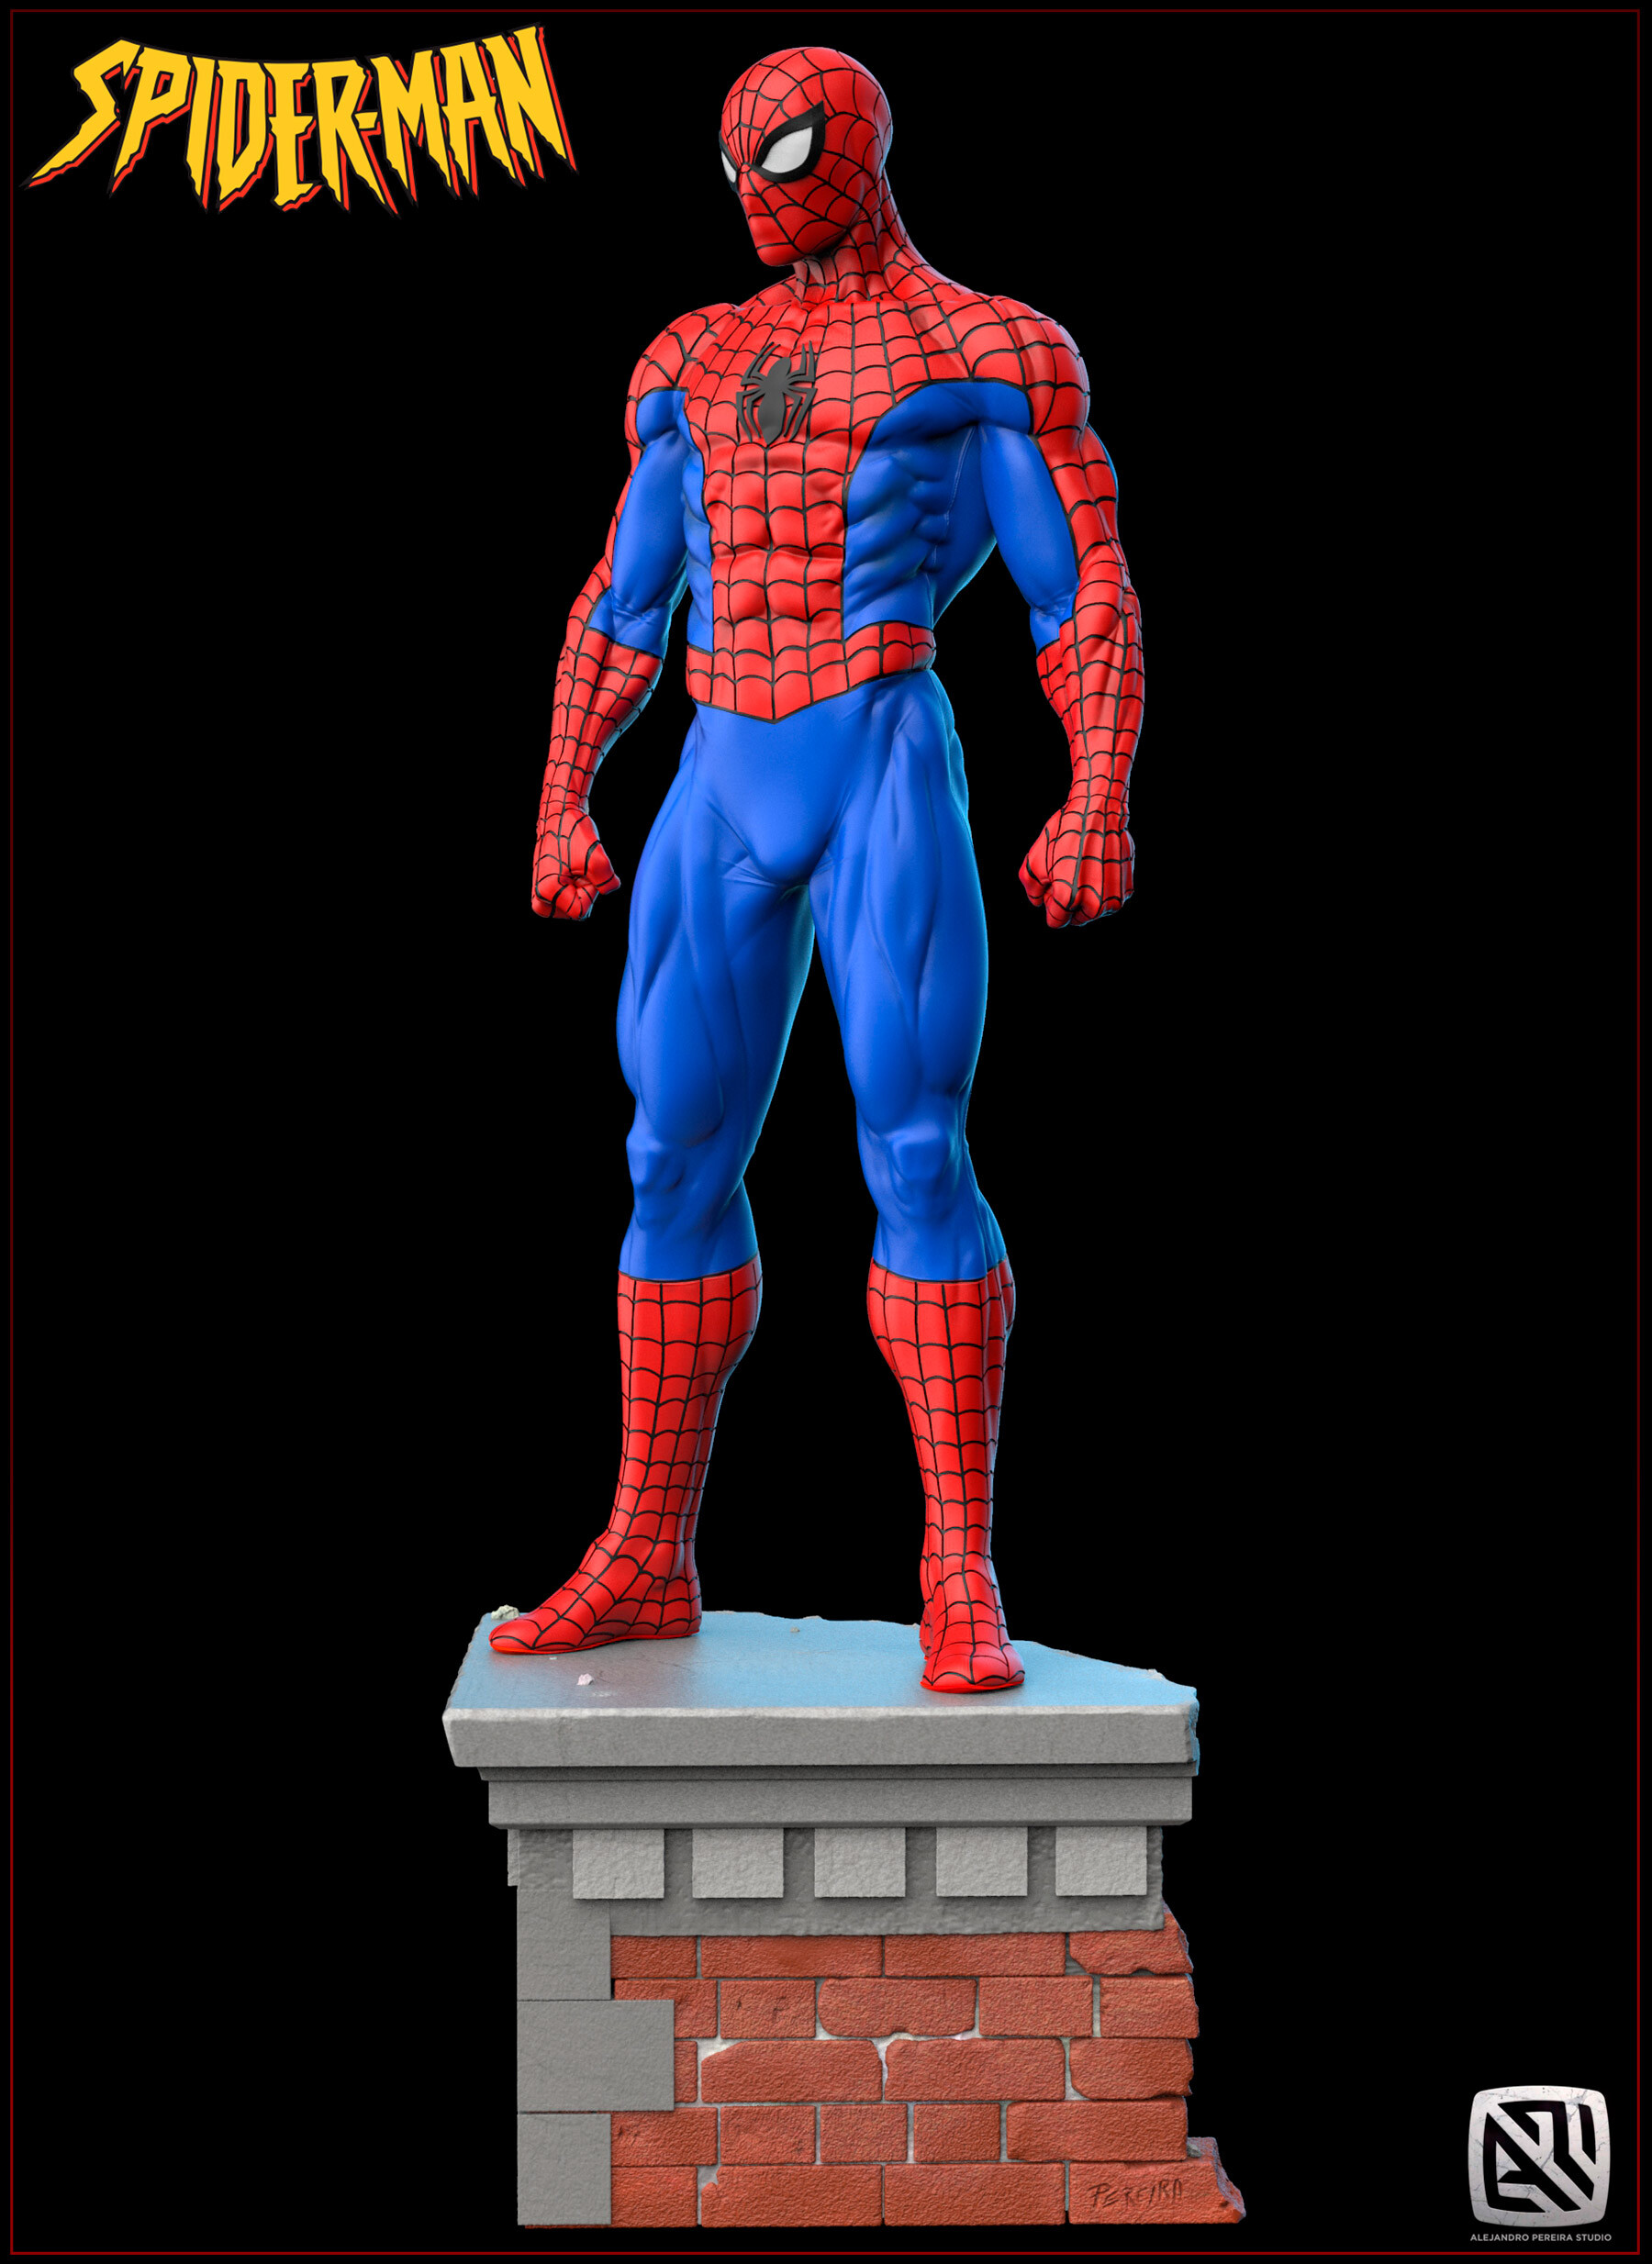 Alejandro pereira spidey render color 02